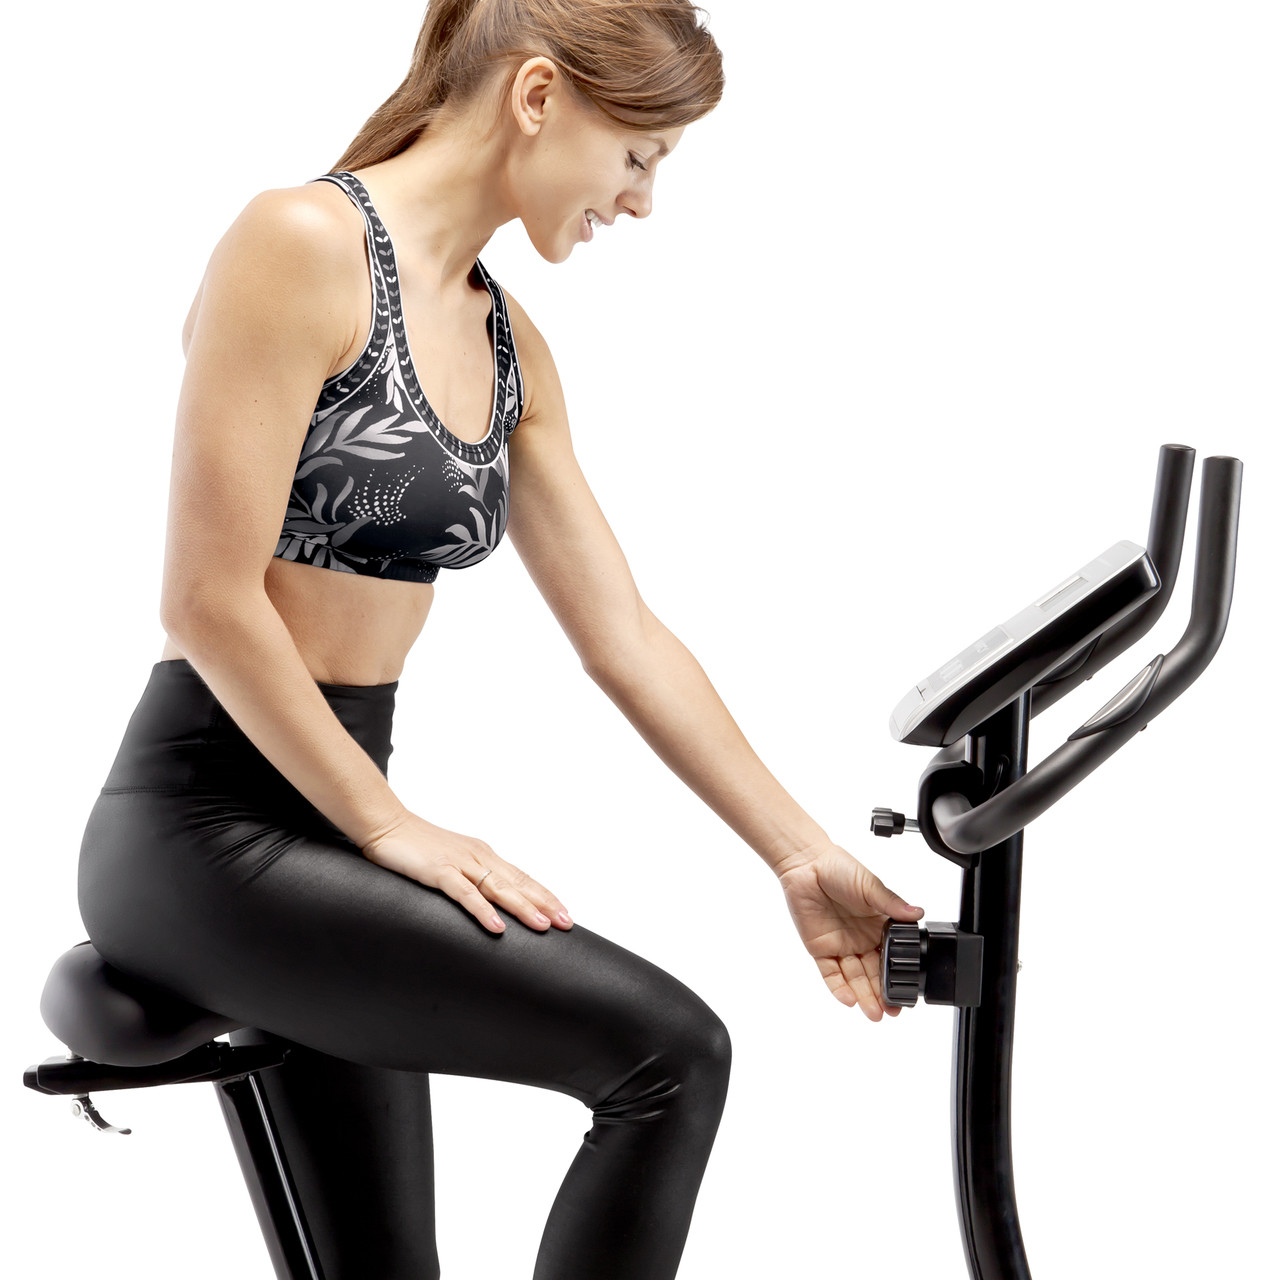 Marcy Magnetic Upright Bike ME-1016U has 8 levels of resistance that can easily be adjusted by turning the resistance knob